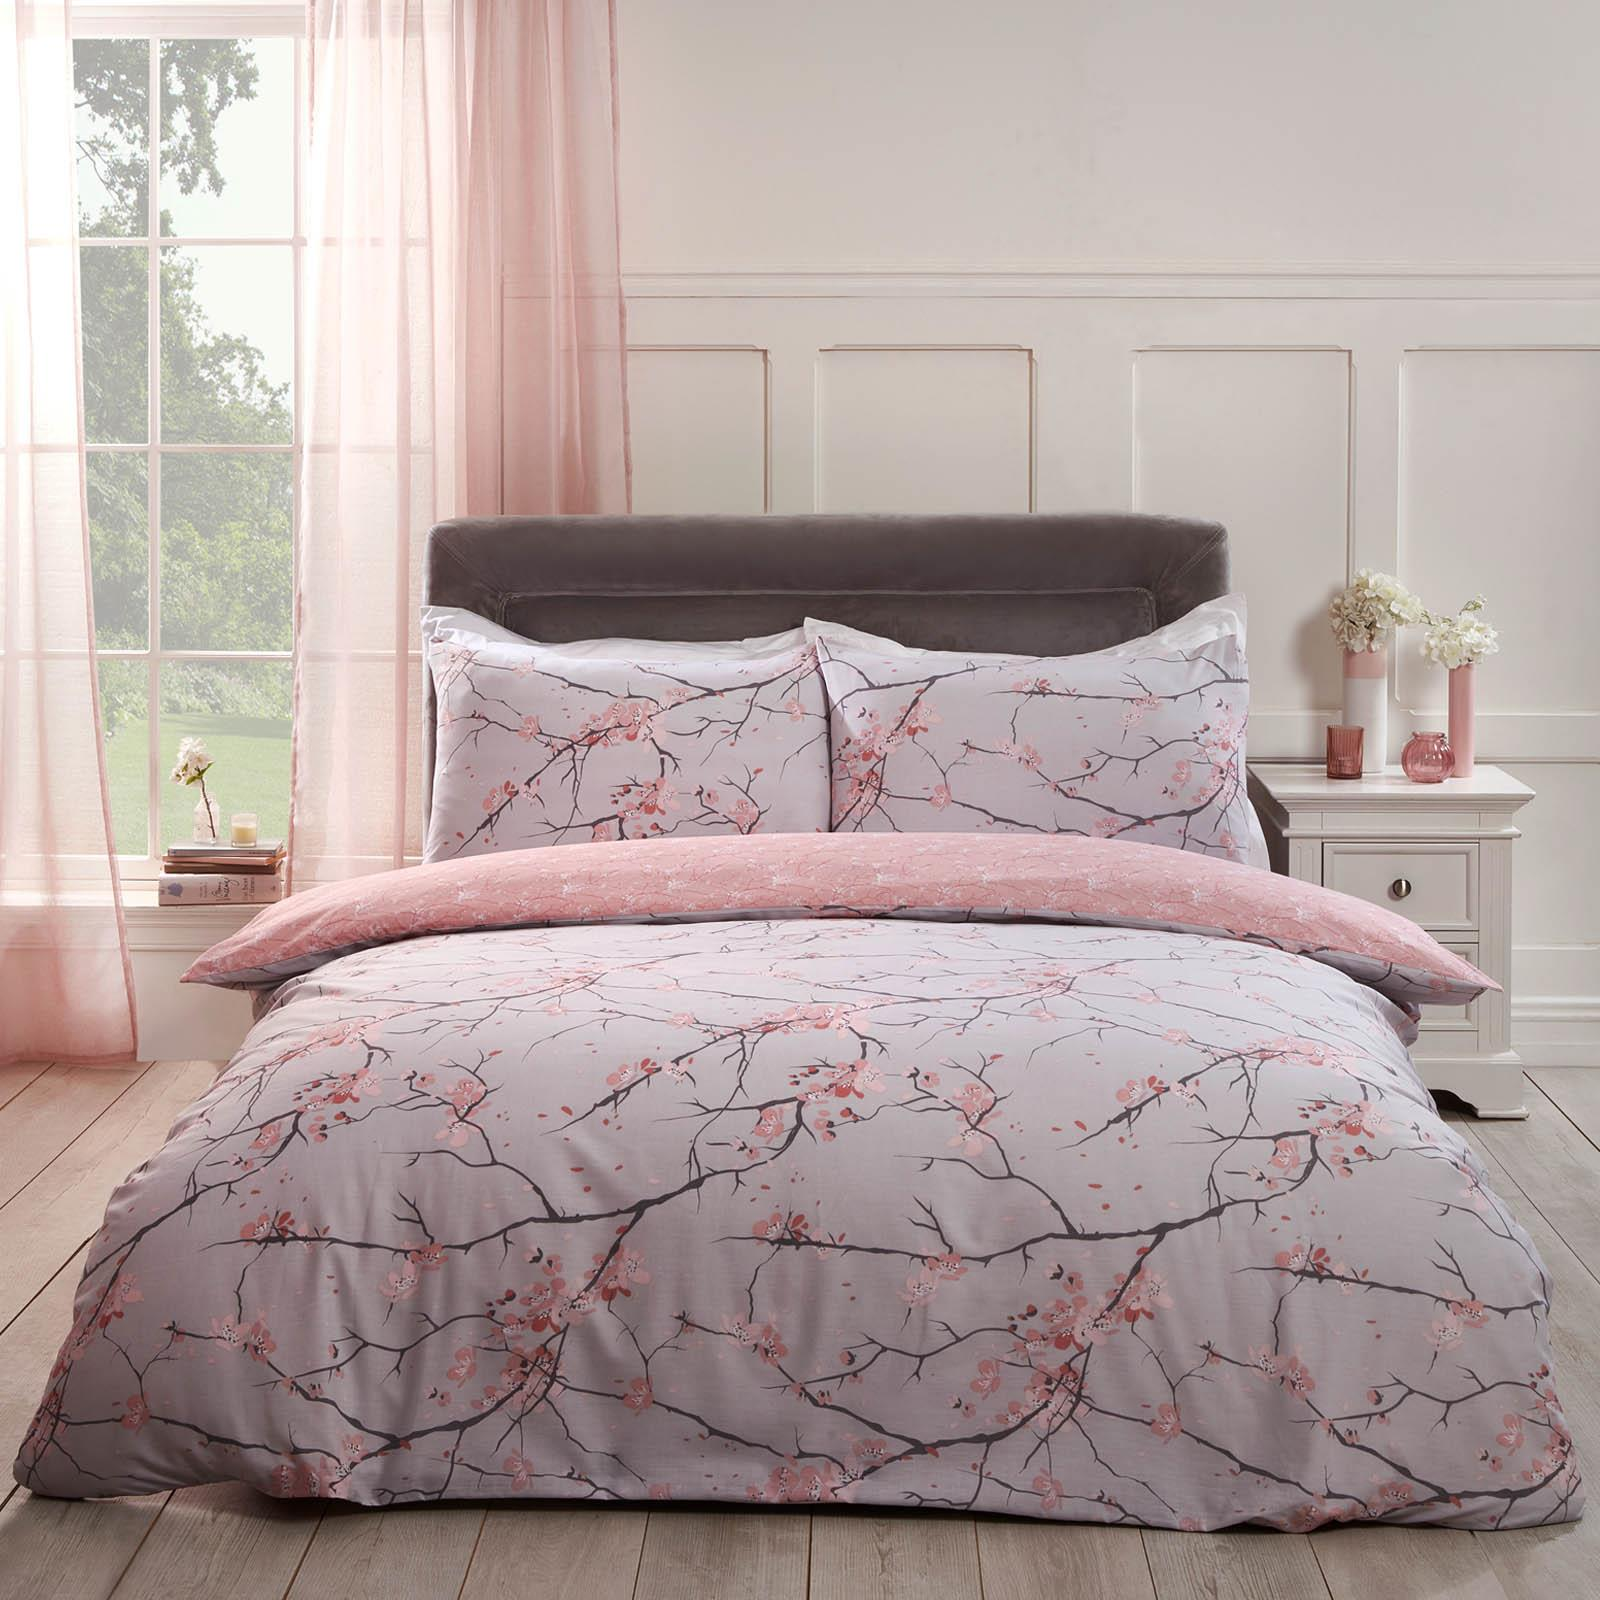 thumbnail 7 - Dreamscene Spring Blossoms Duvet Cover with Pillowcases Bedding Set Blush Ochre